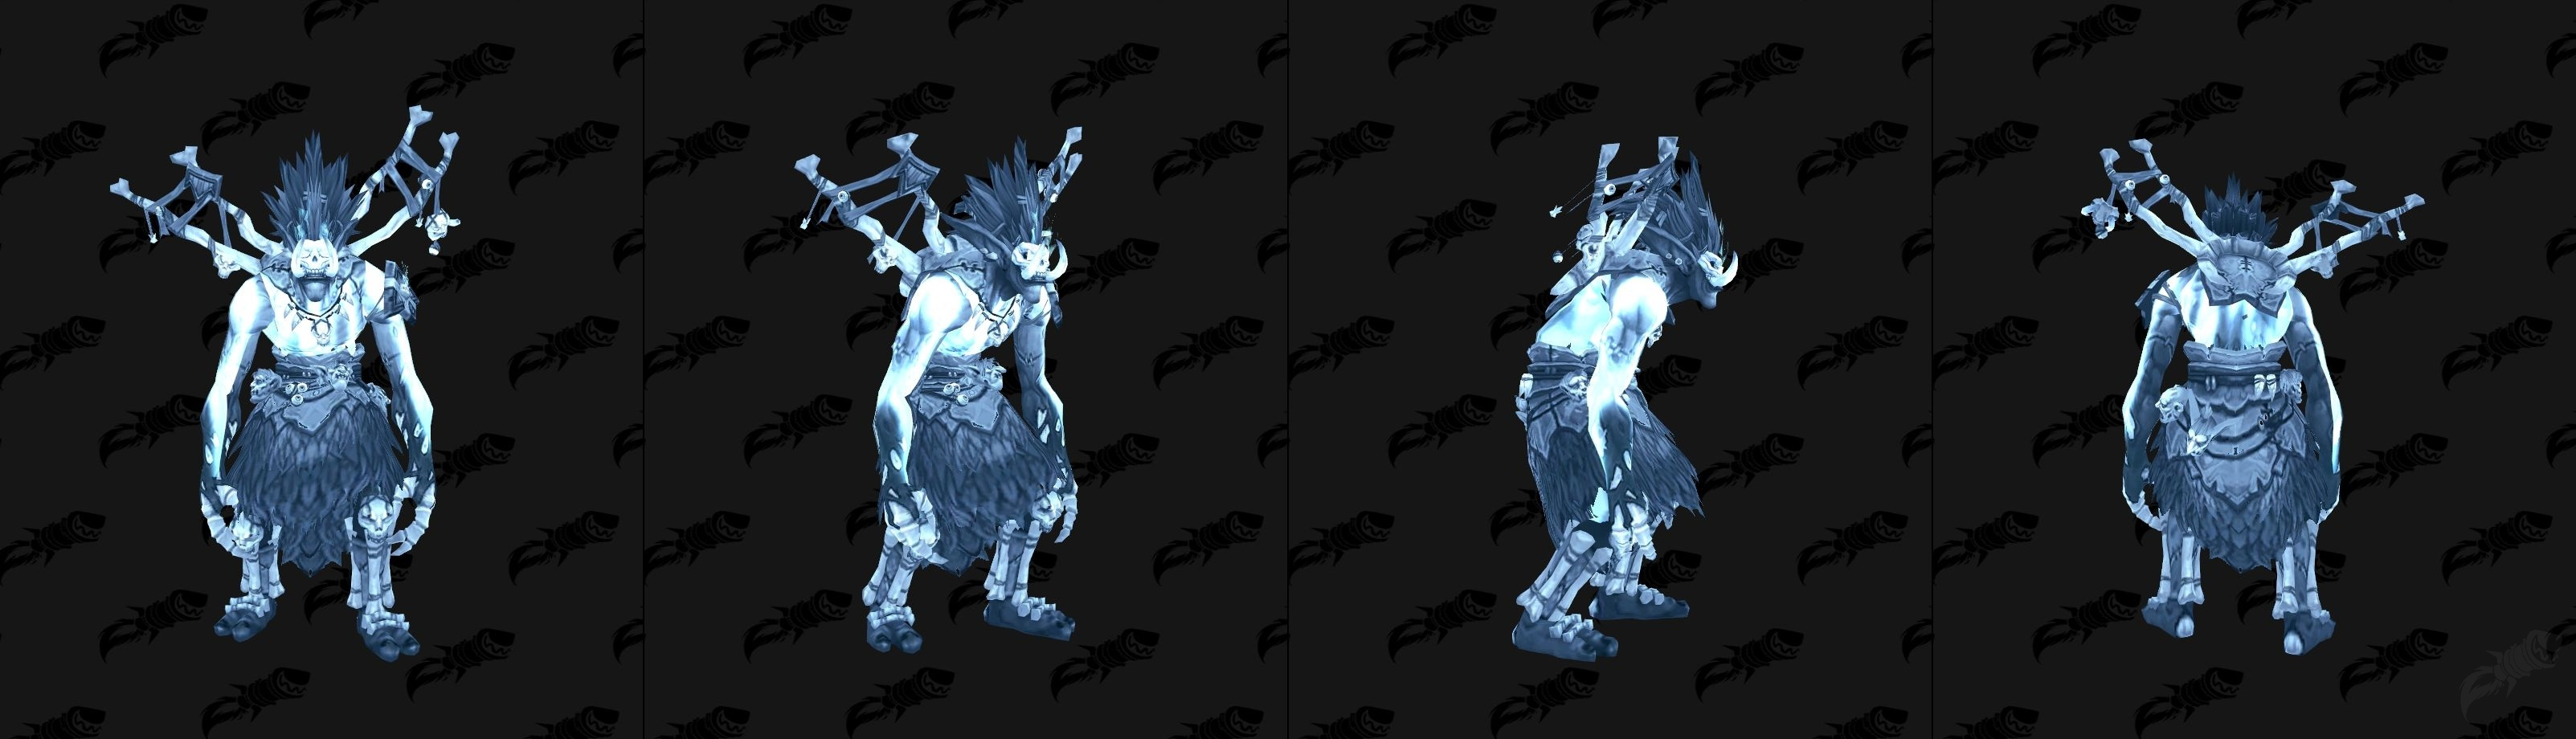 Battle for Azeroth 25902 Creature Models - Wowhead News